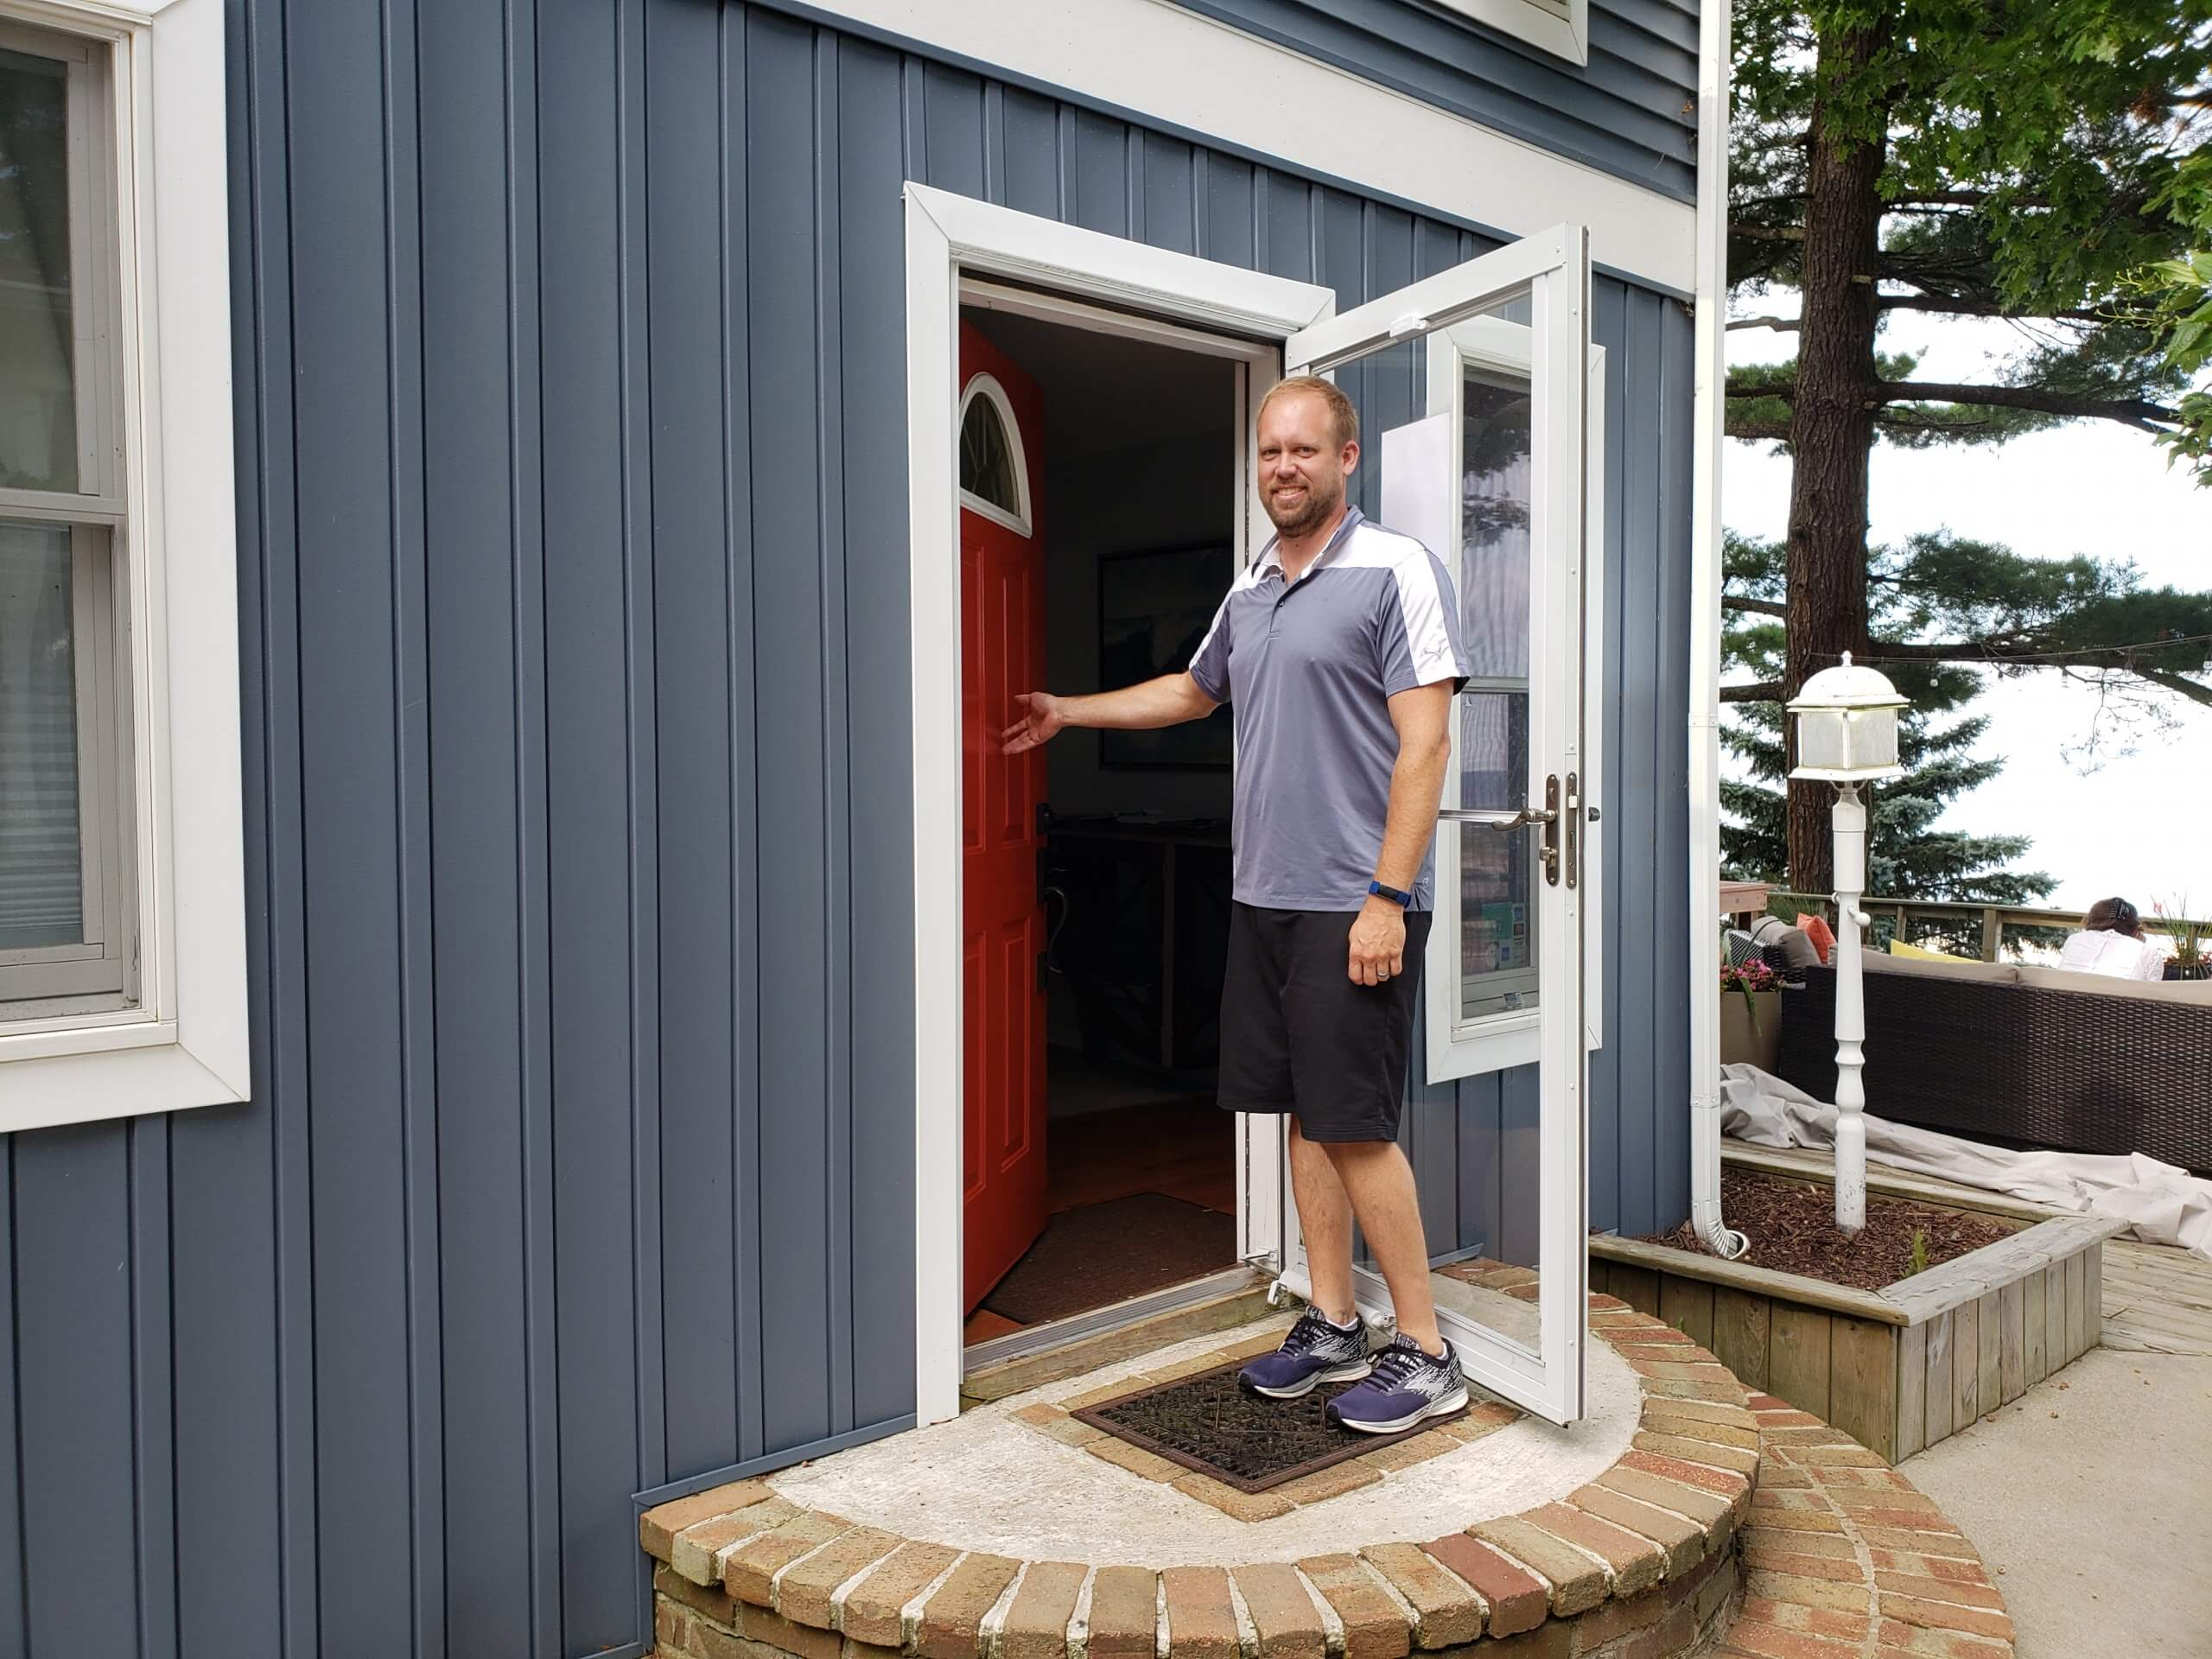 Brian King welcomes guests to Looking Glass Beachfront Inn